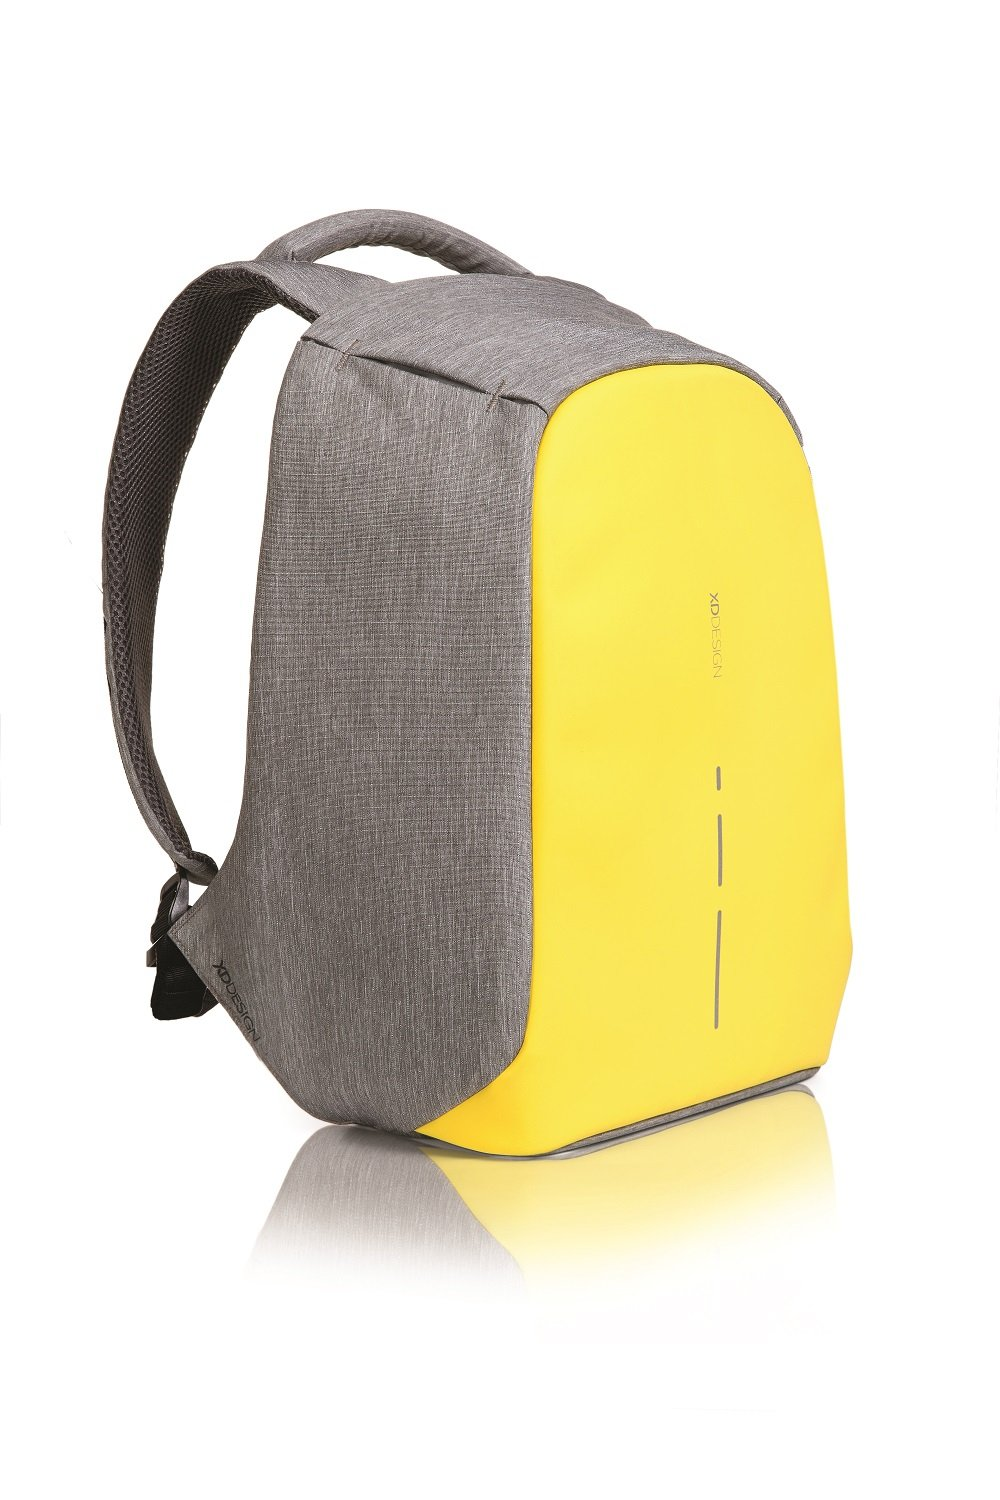 XD Design - Bobby Compact Anti-Theft-Backpack - Yellow (p705.536)